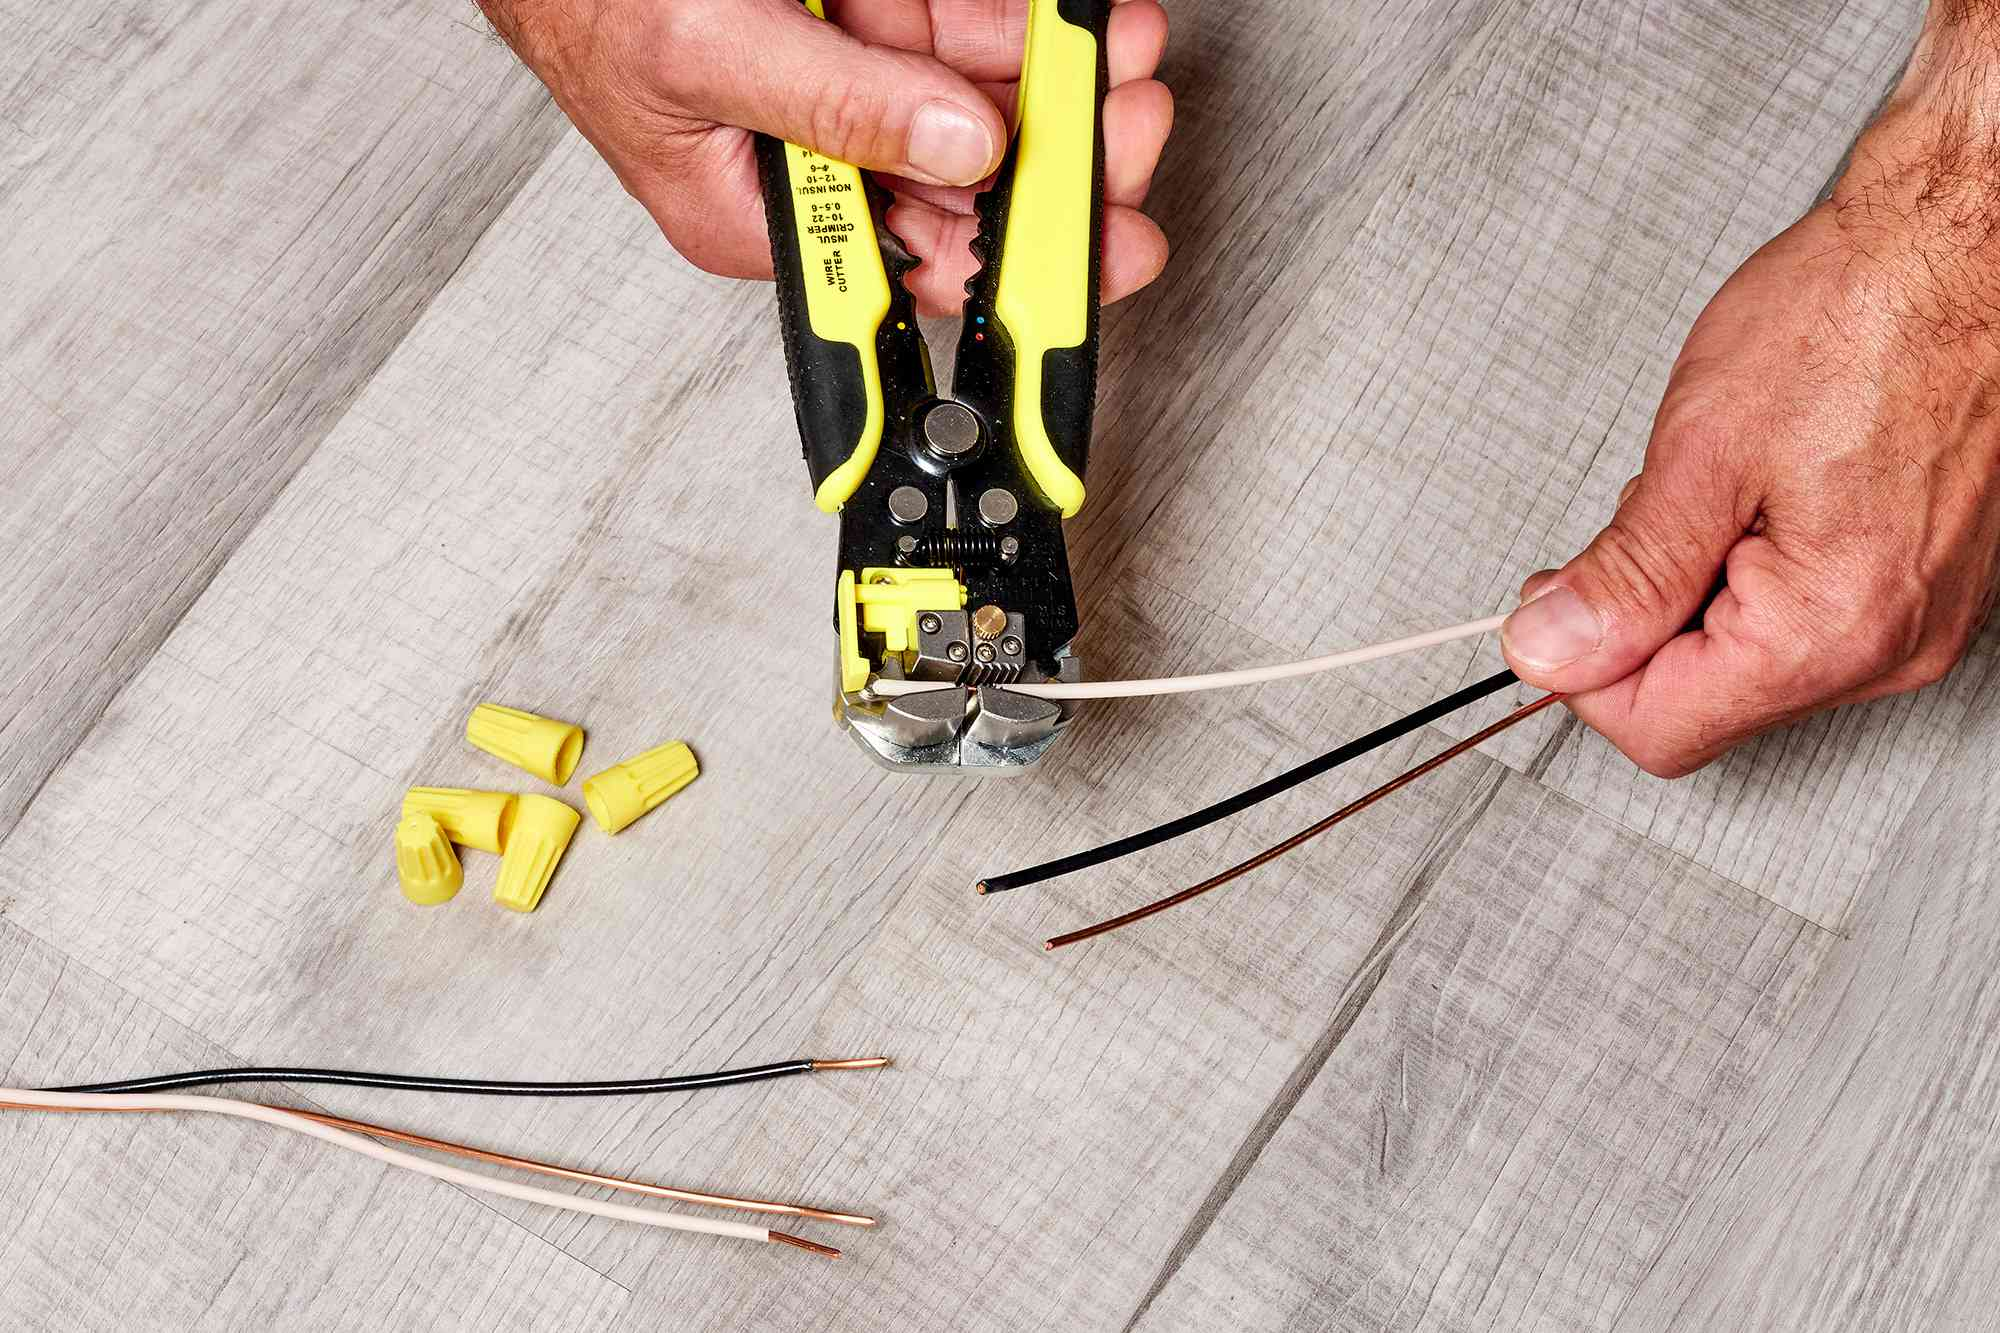 Wire insulation stripped 1/2 to 3/4 inch on ends with wire strippers